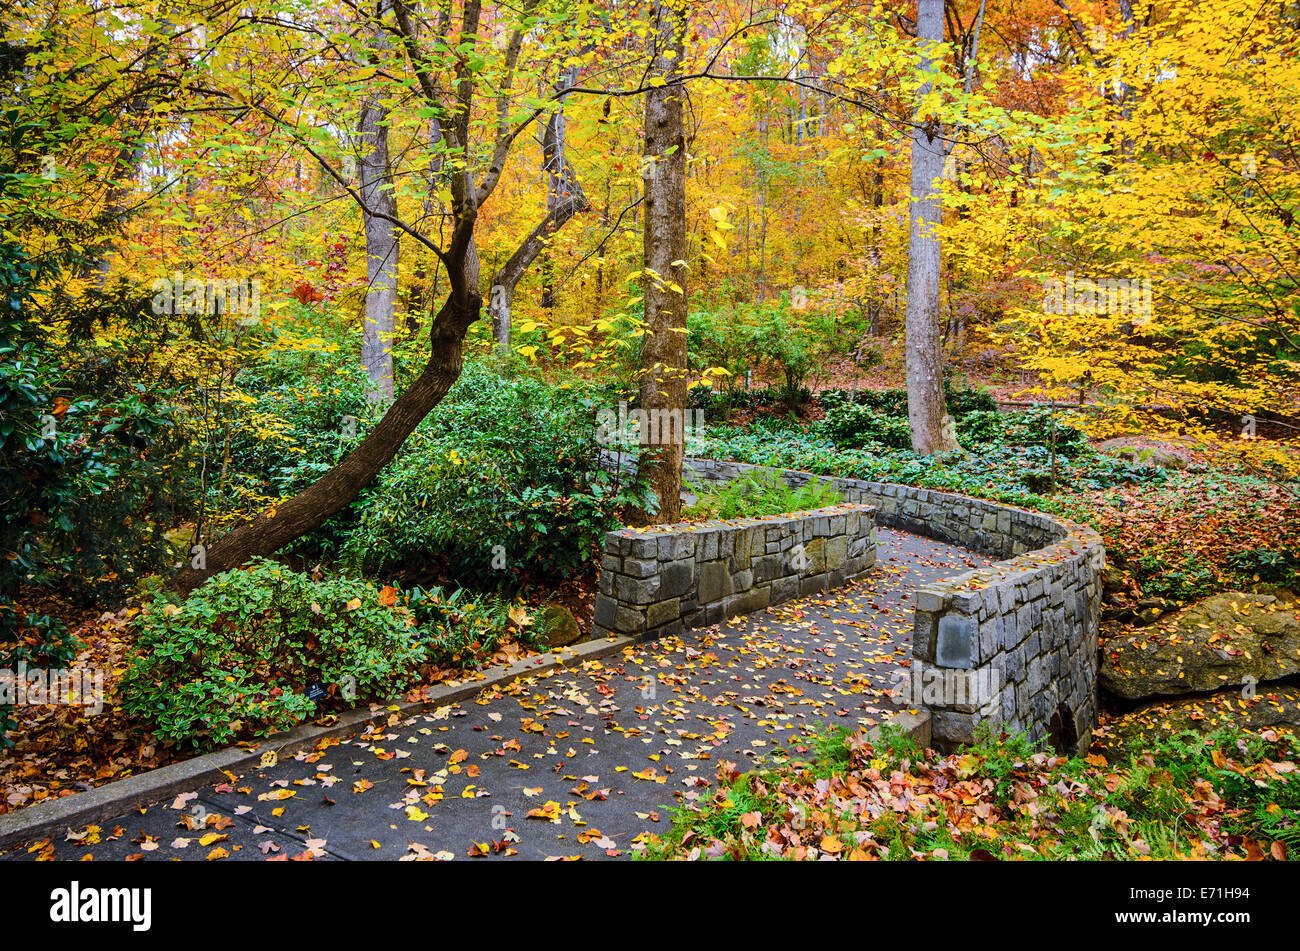 Fall trail at Botanical Gardens in Athens, Georgia, USA. - Stock Image